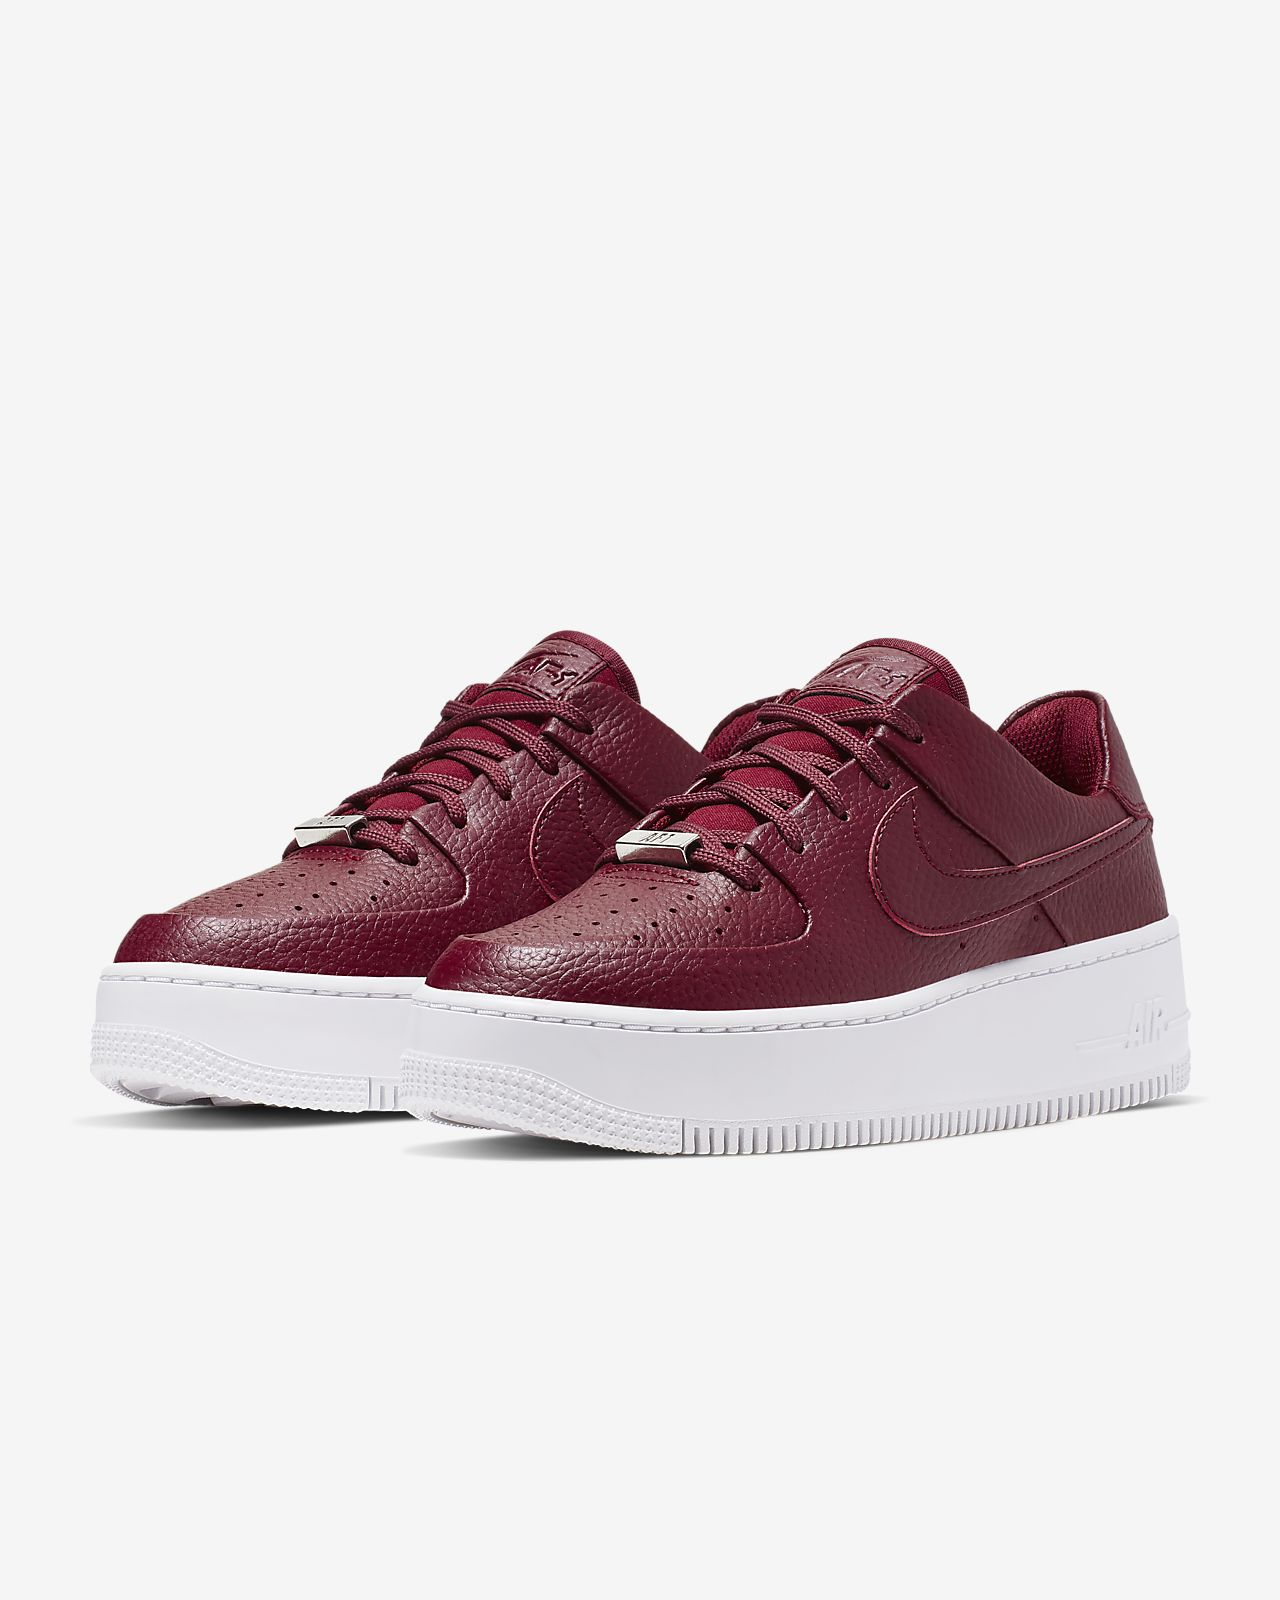 Sage Low Nike 1 Force Pour Femme Chaussure Air rsChtdQ